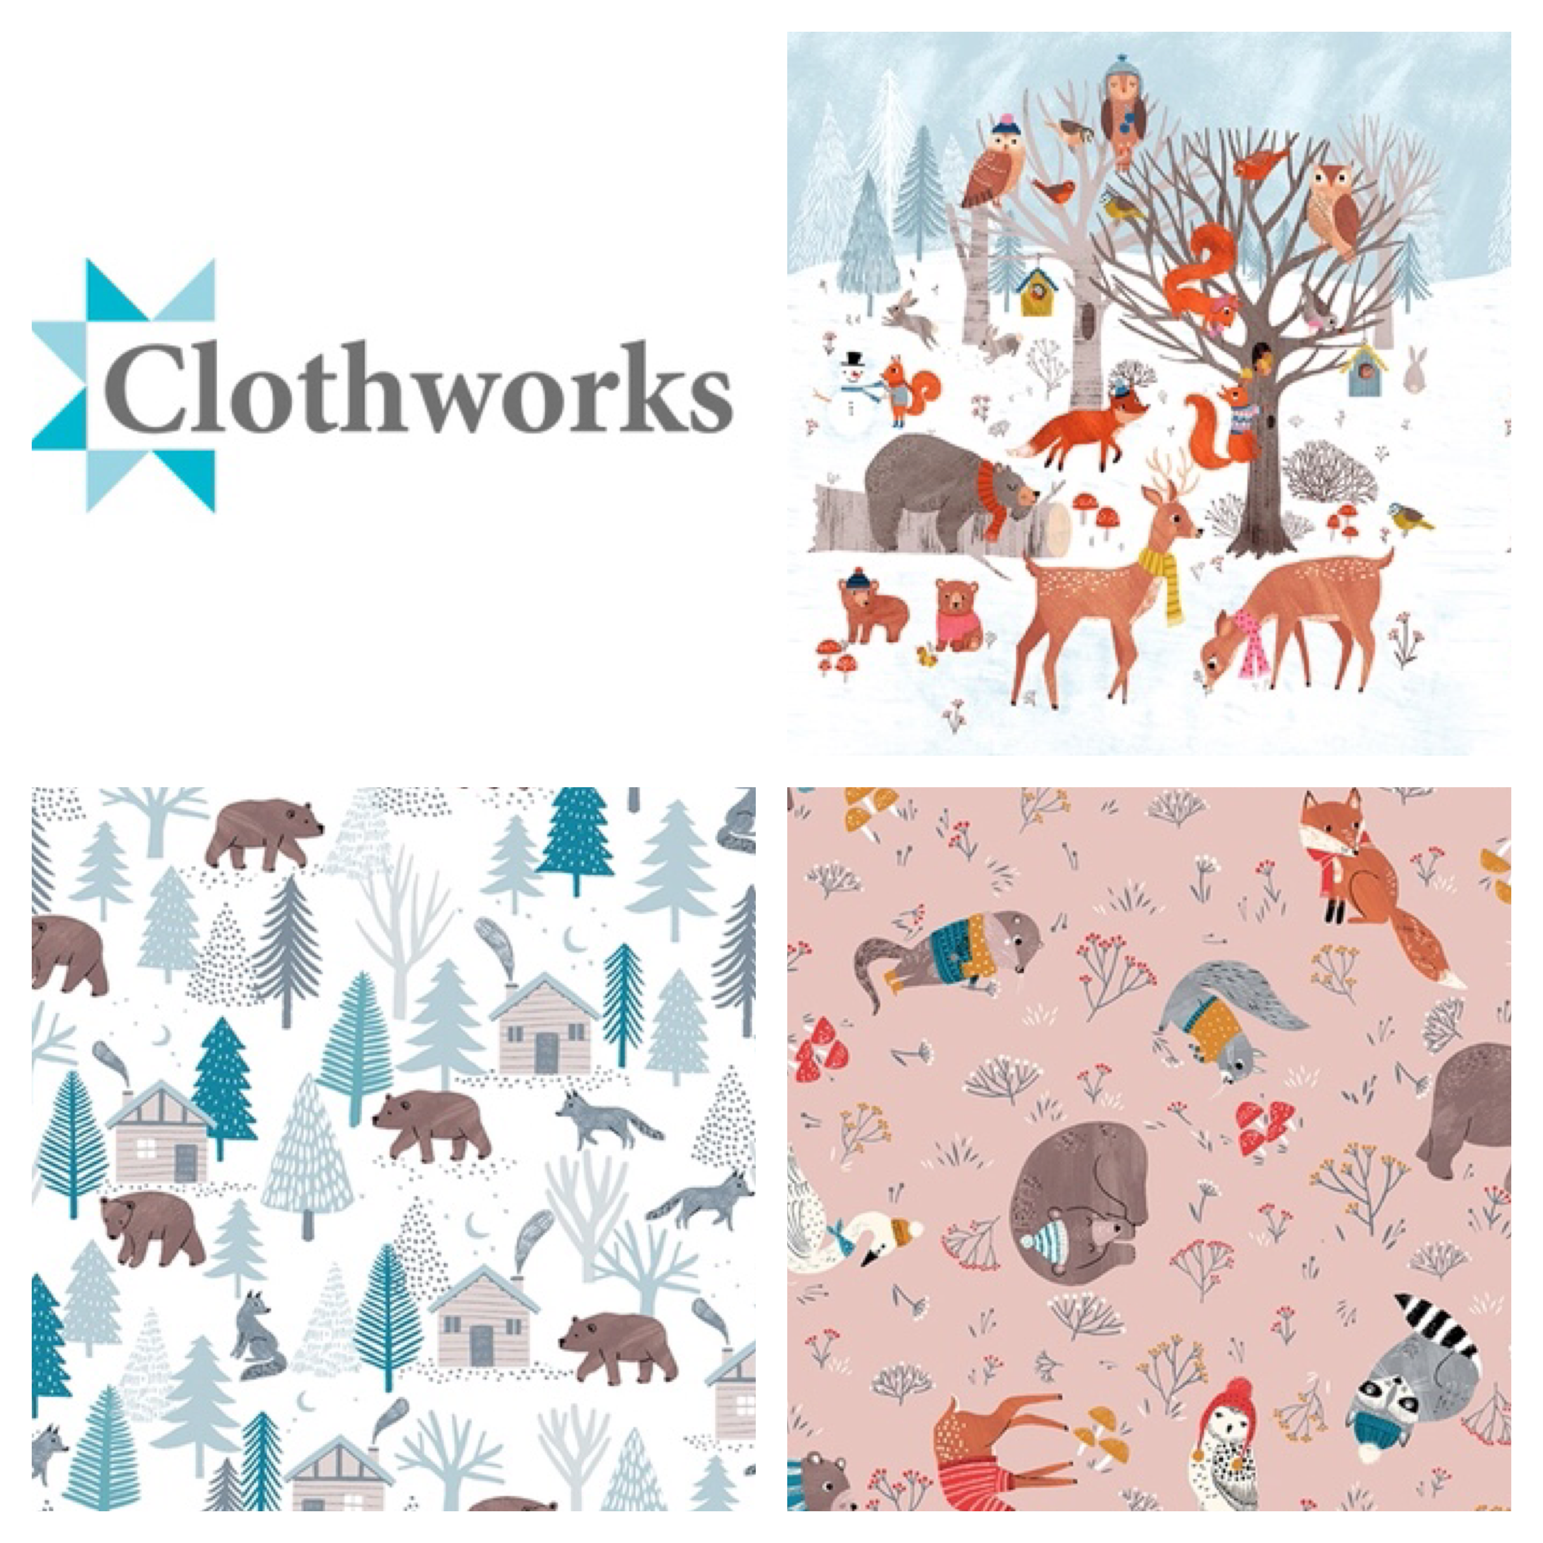 Dreaming of snow clothworks